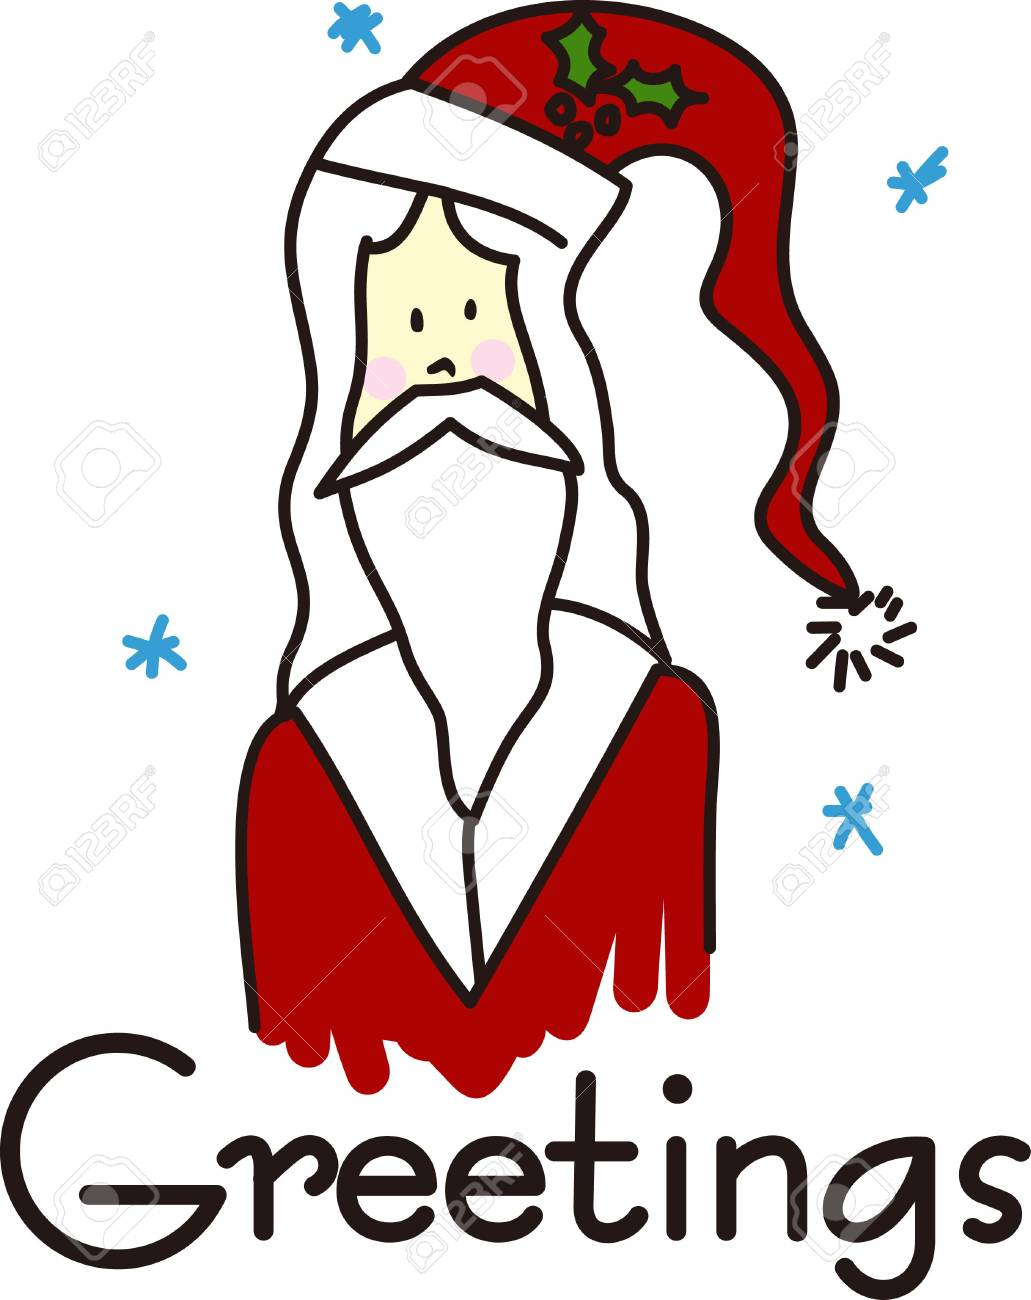 Wishing You Merry Ho Ho Ho Rather Than >> Here Is Santa Wishing You A Merry Christmas Ho Ho Ho Royalty Free